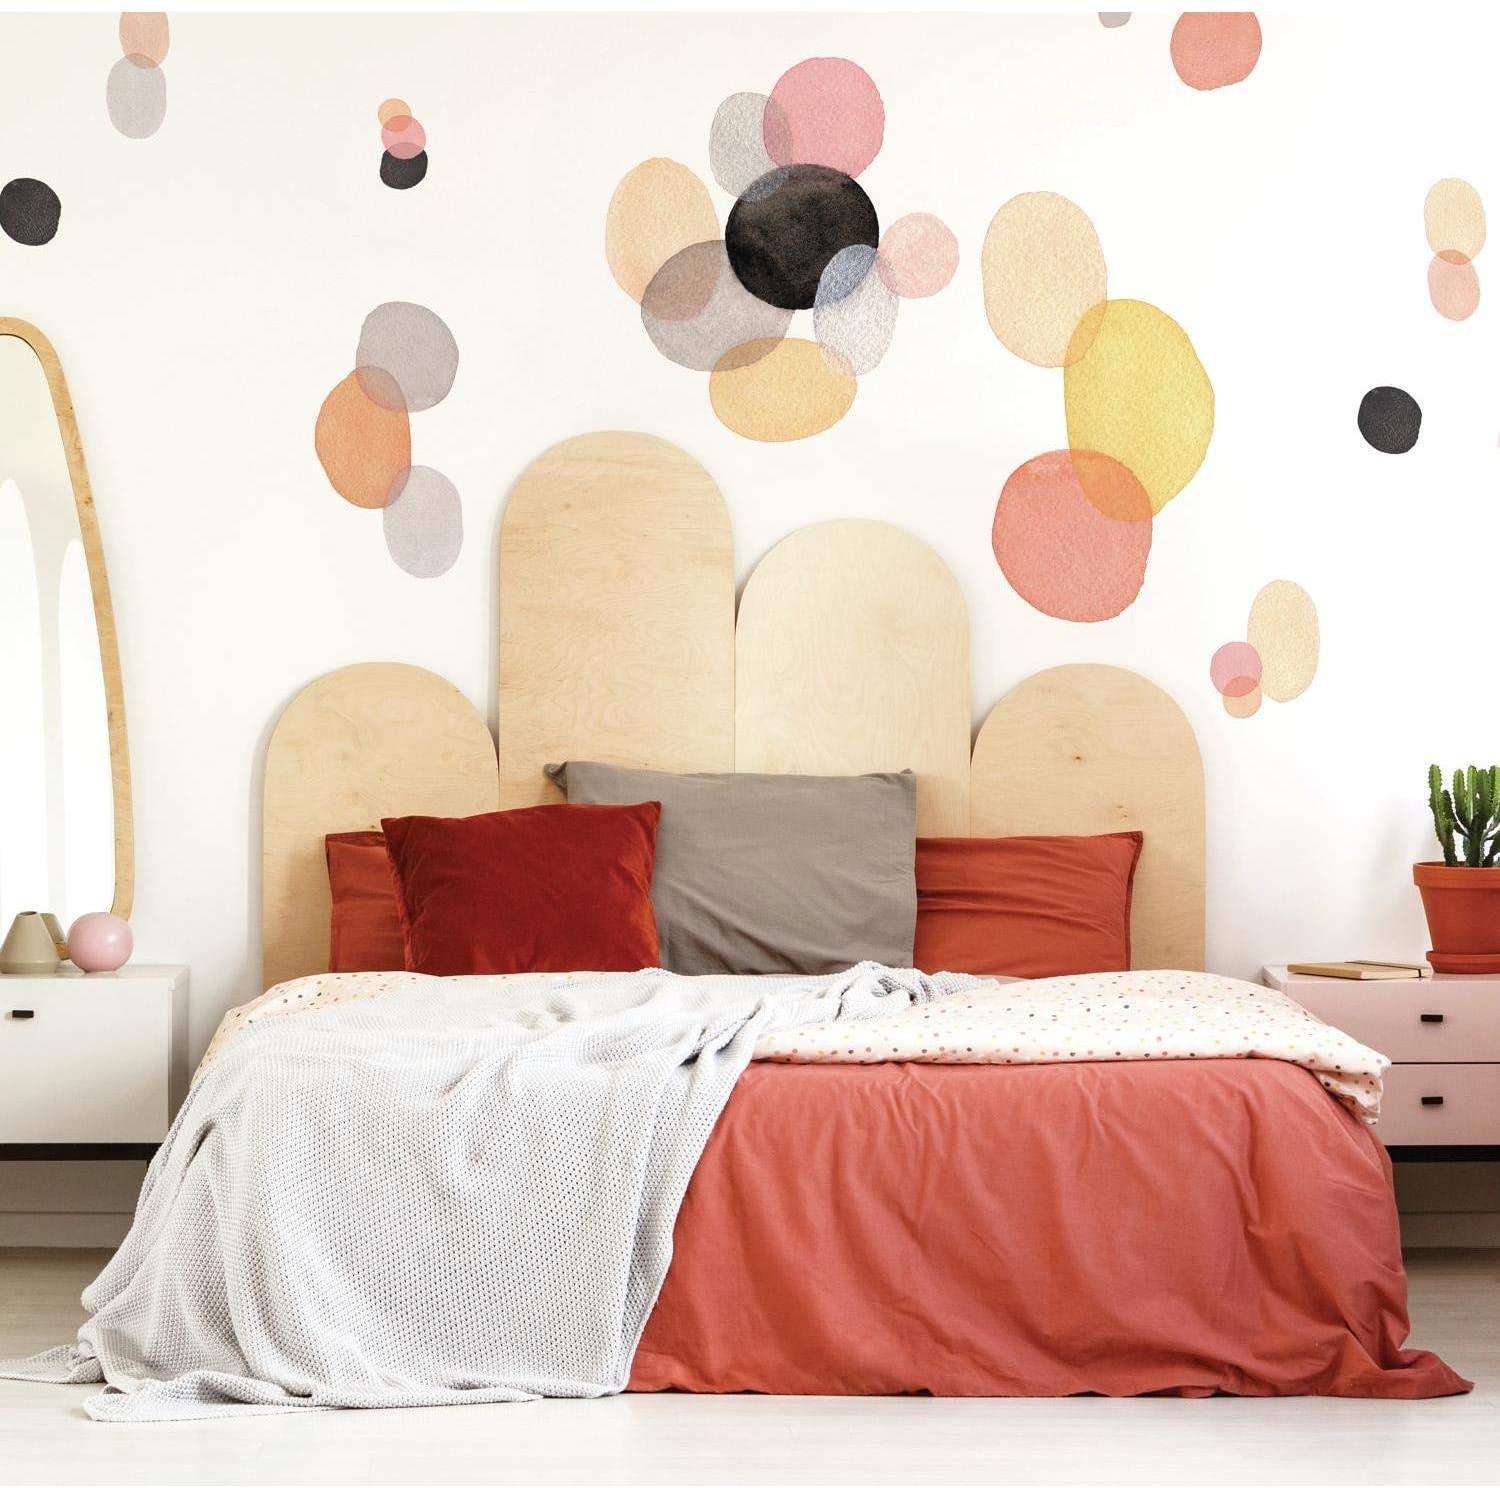 Red bed with pillows and geometric pattern in wall